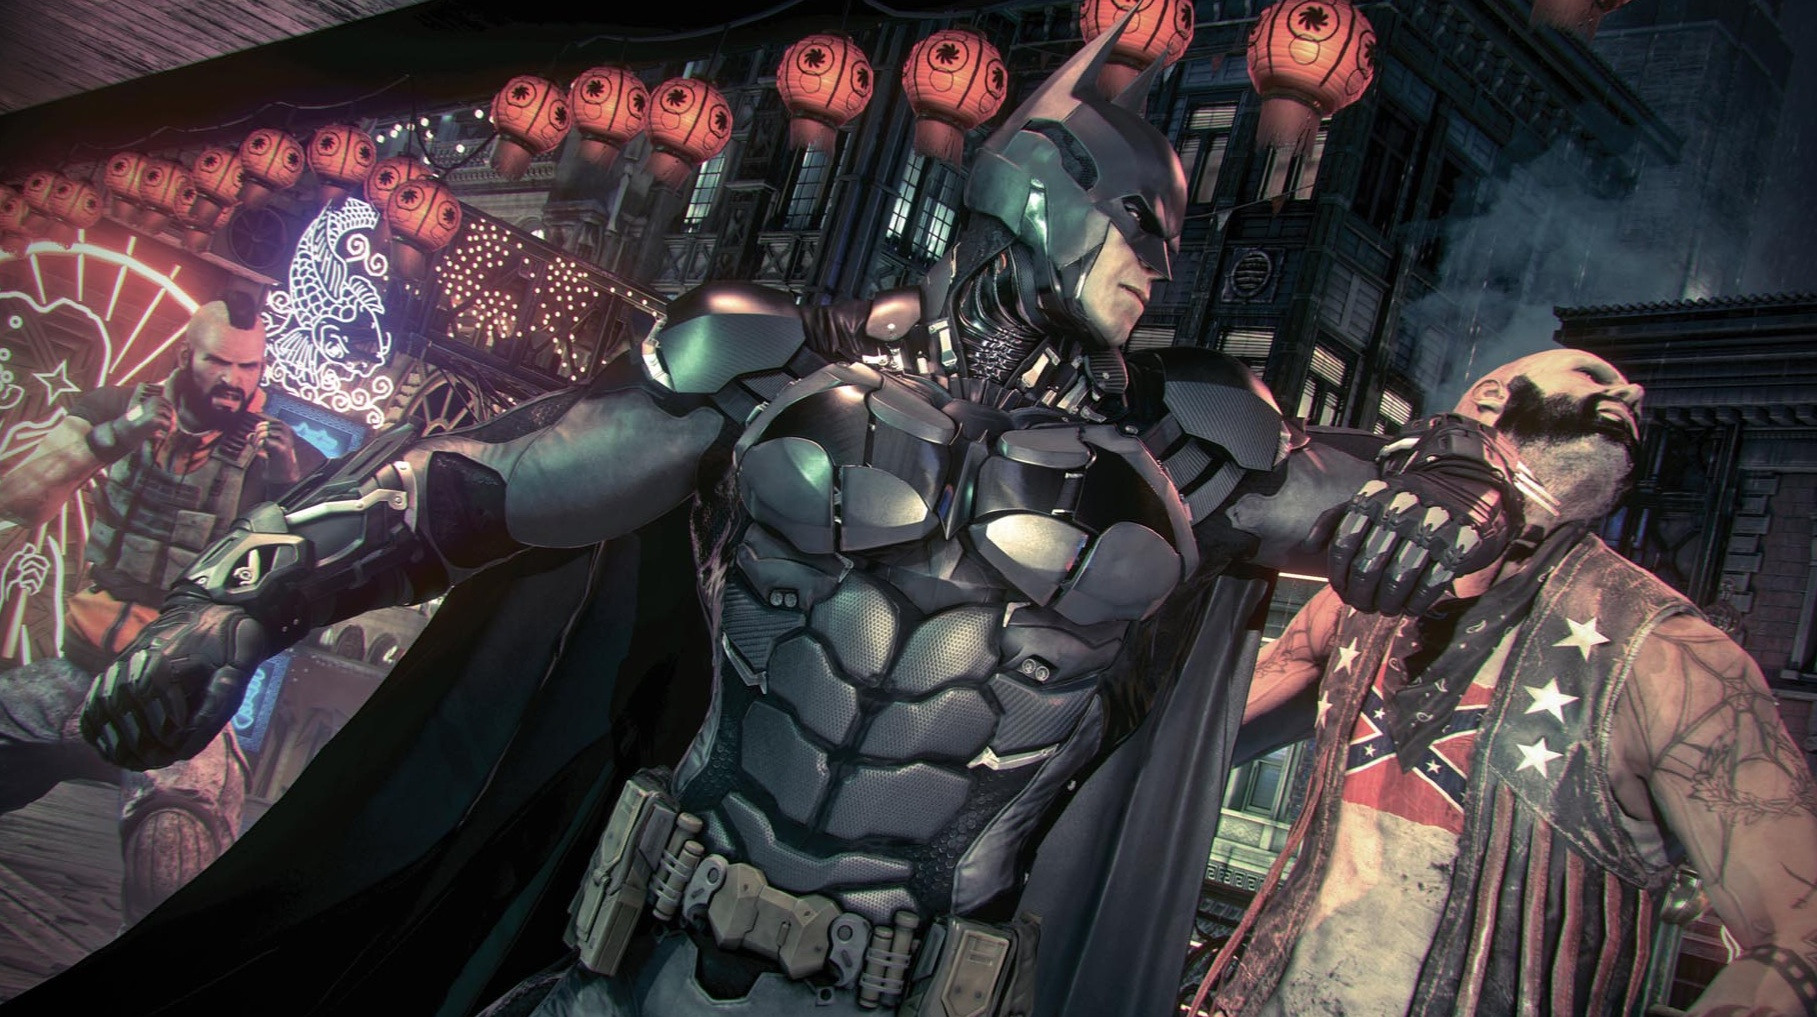 AMD Releases Catalyst 15 6 Driver for Batman: Arkham Knight